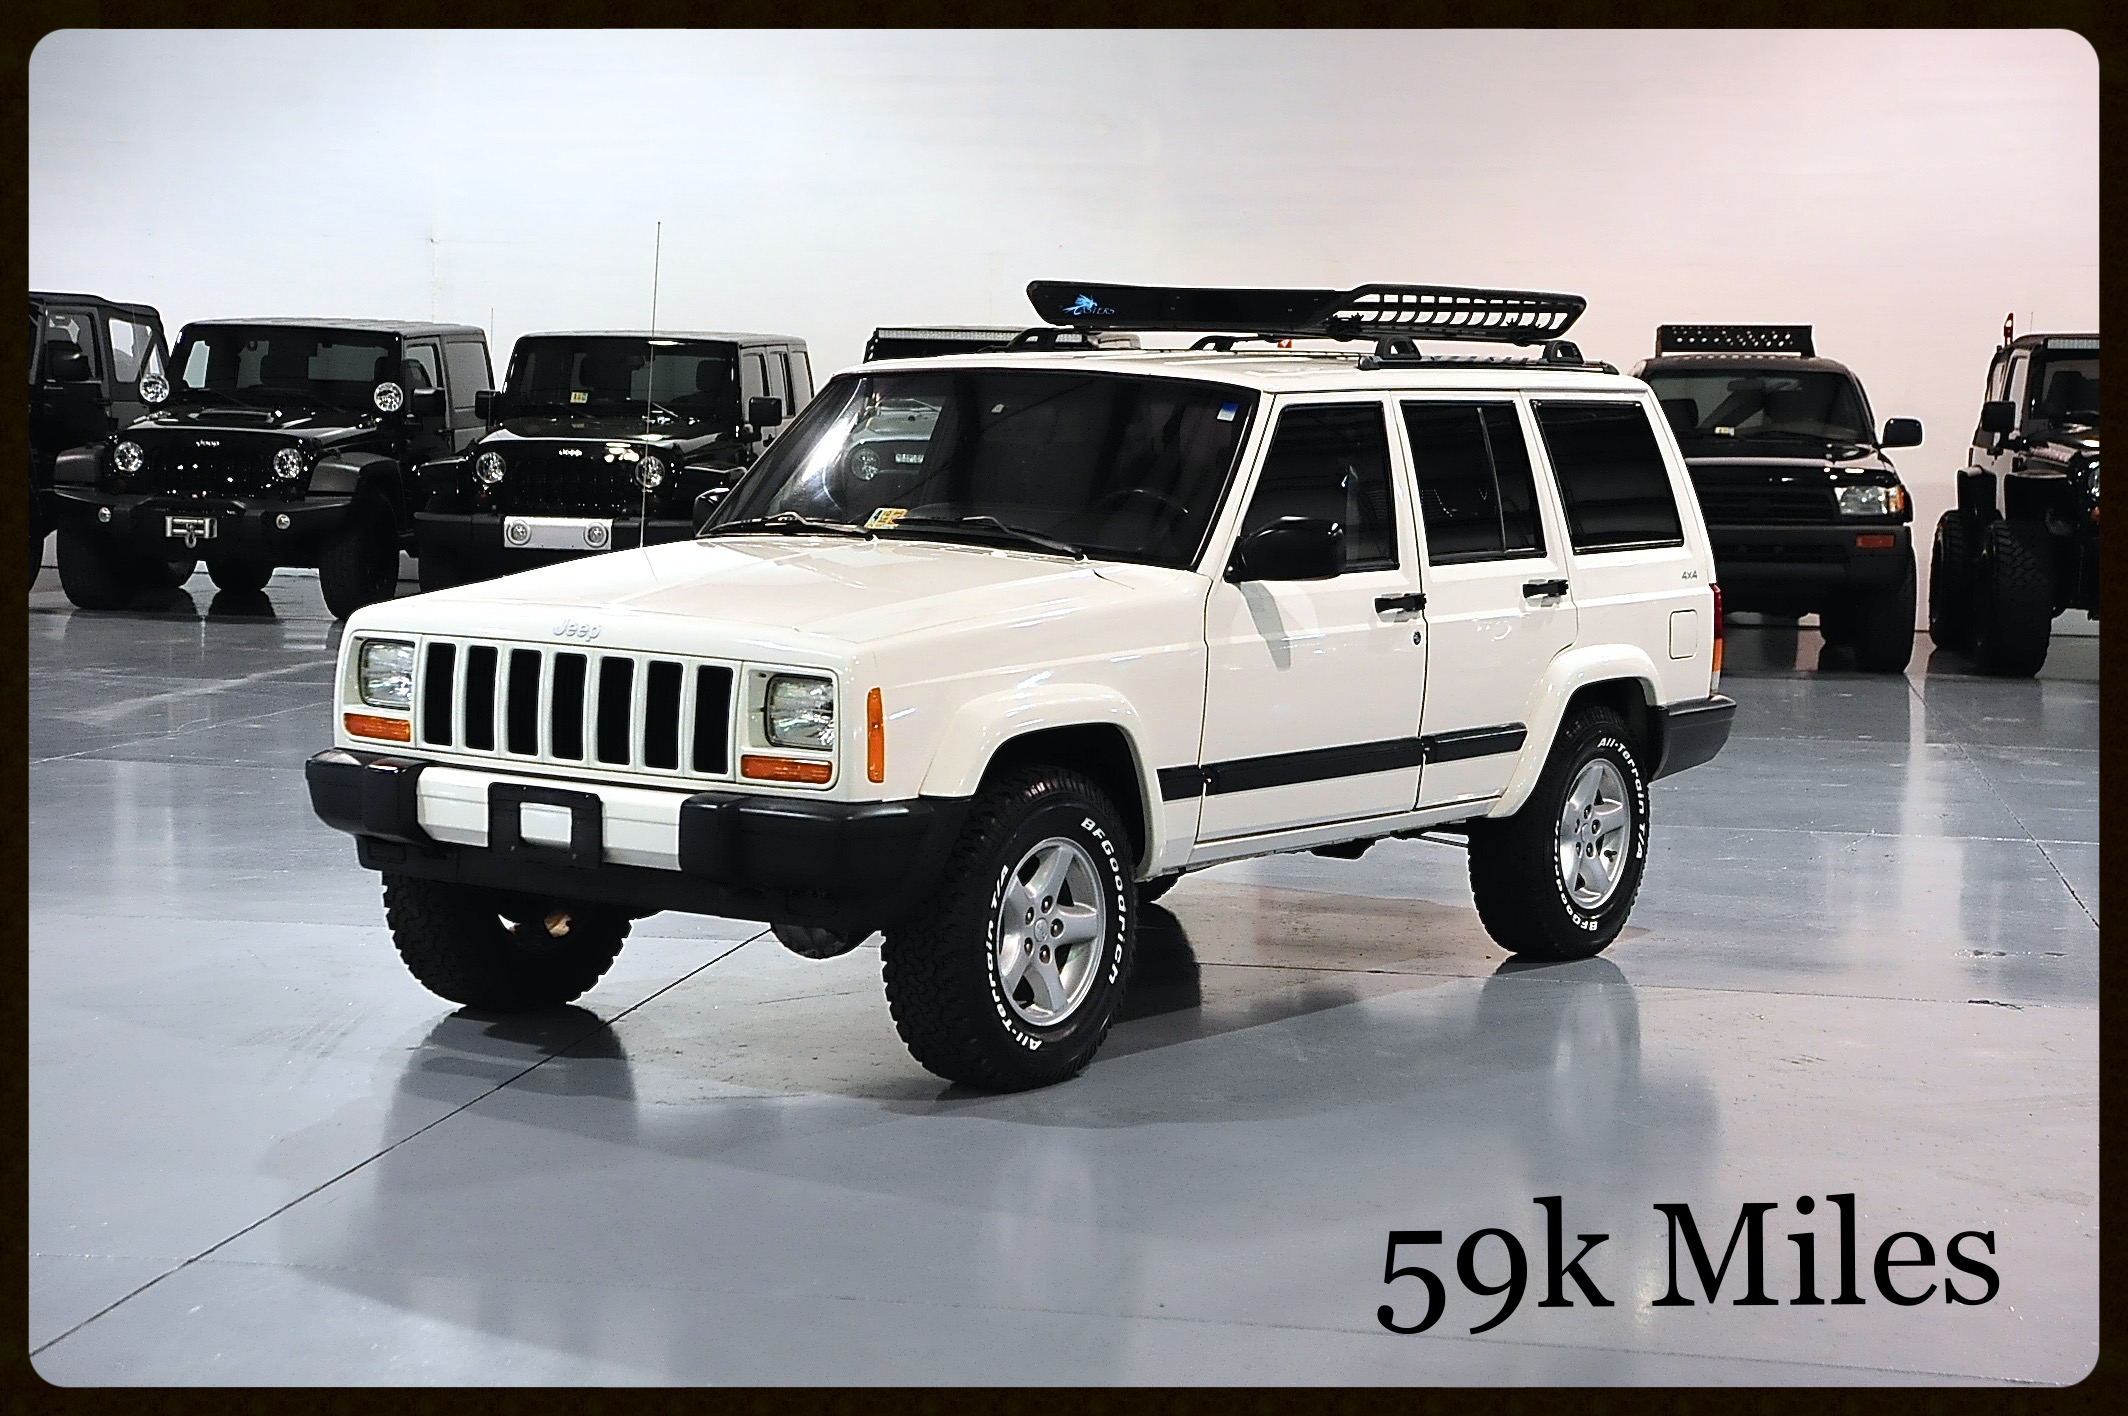 ONLY 59K MILES....Another great example of one of our original Cherokees. Click here for More Photos and Video